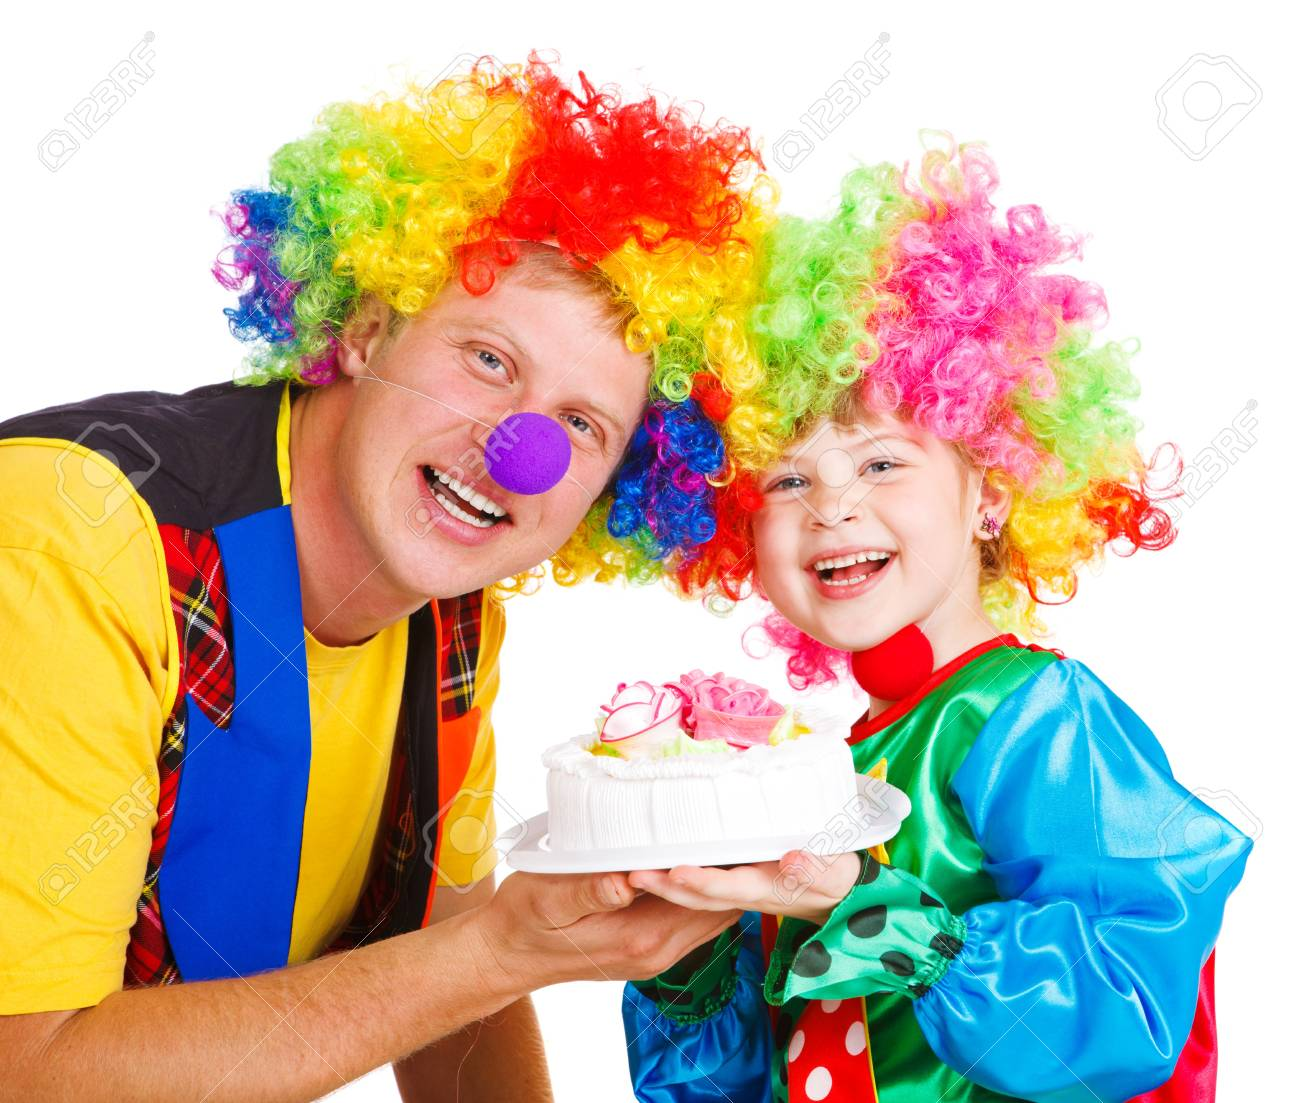 Miraculous Two Clowns Holding Birthday Cake Isolated Stock Photo Picture Funny Birthday Cards Online Inifodamsfinfo